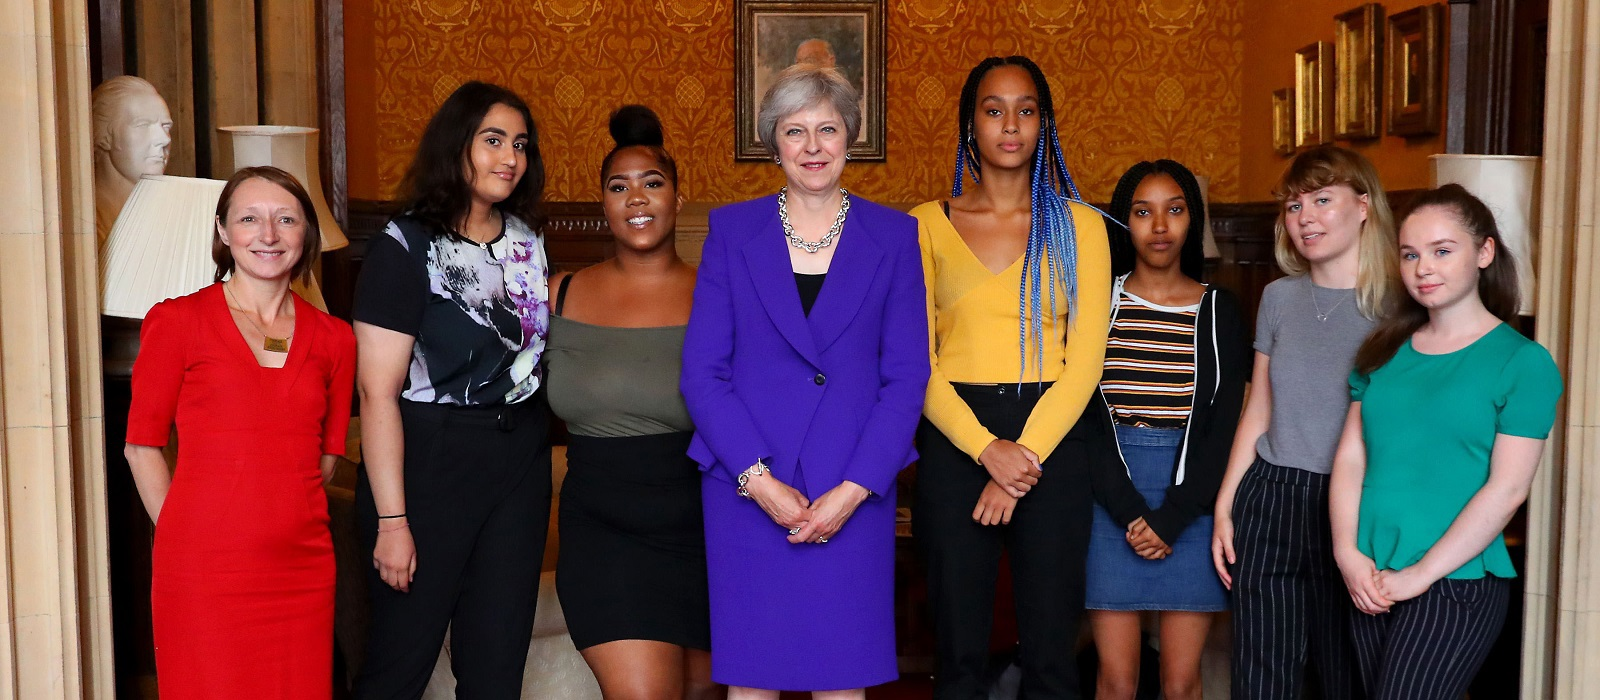 Prime Minister encourages young women to get into politics